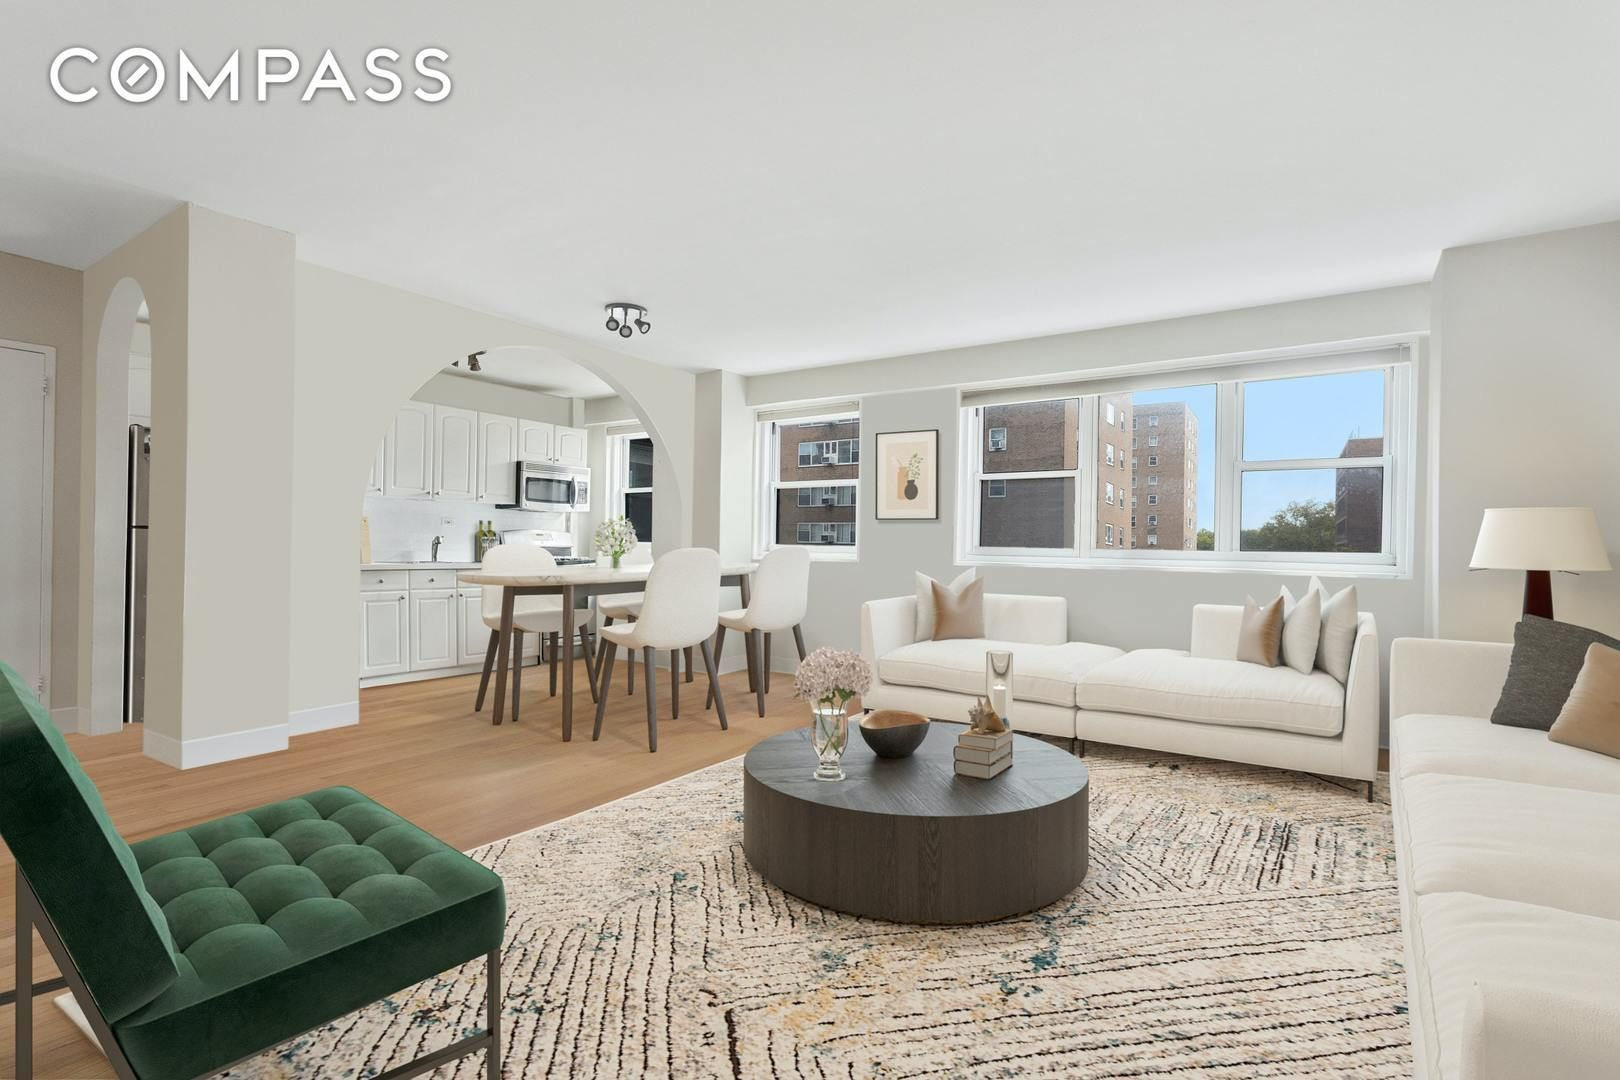 Apartment for sale at 122 Ashland Place, Apt 9-G